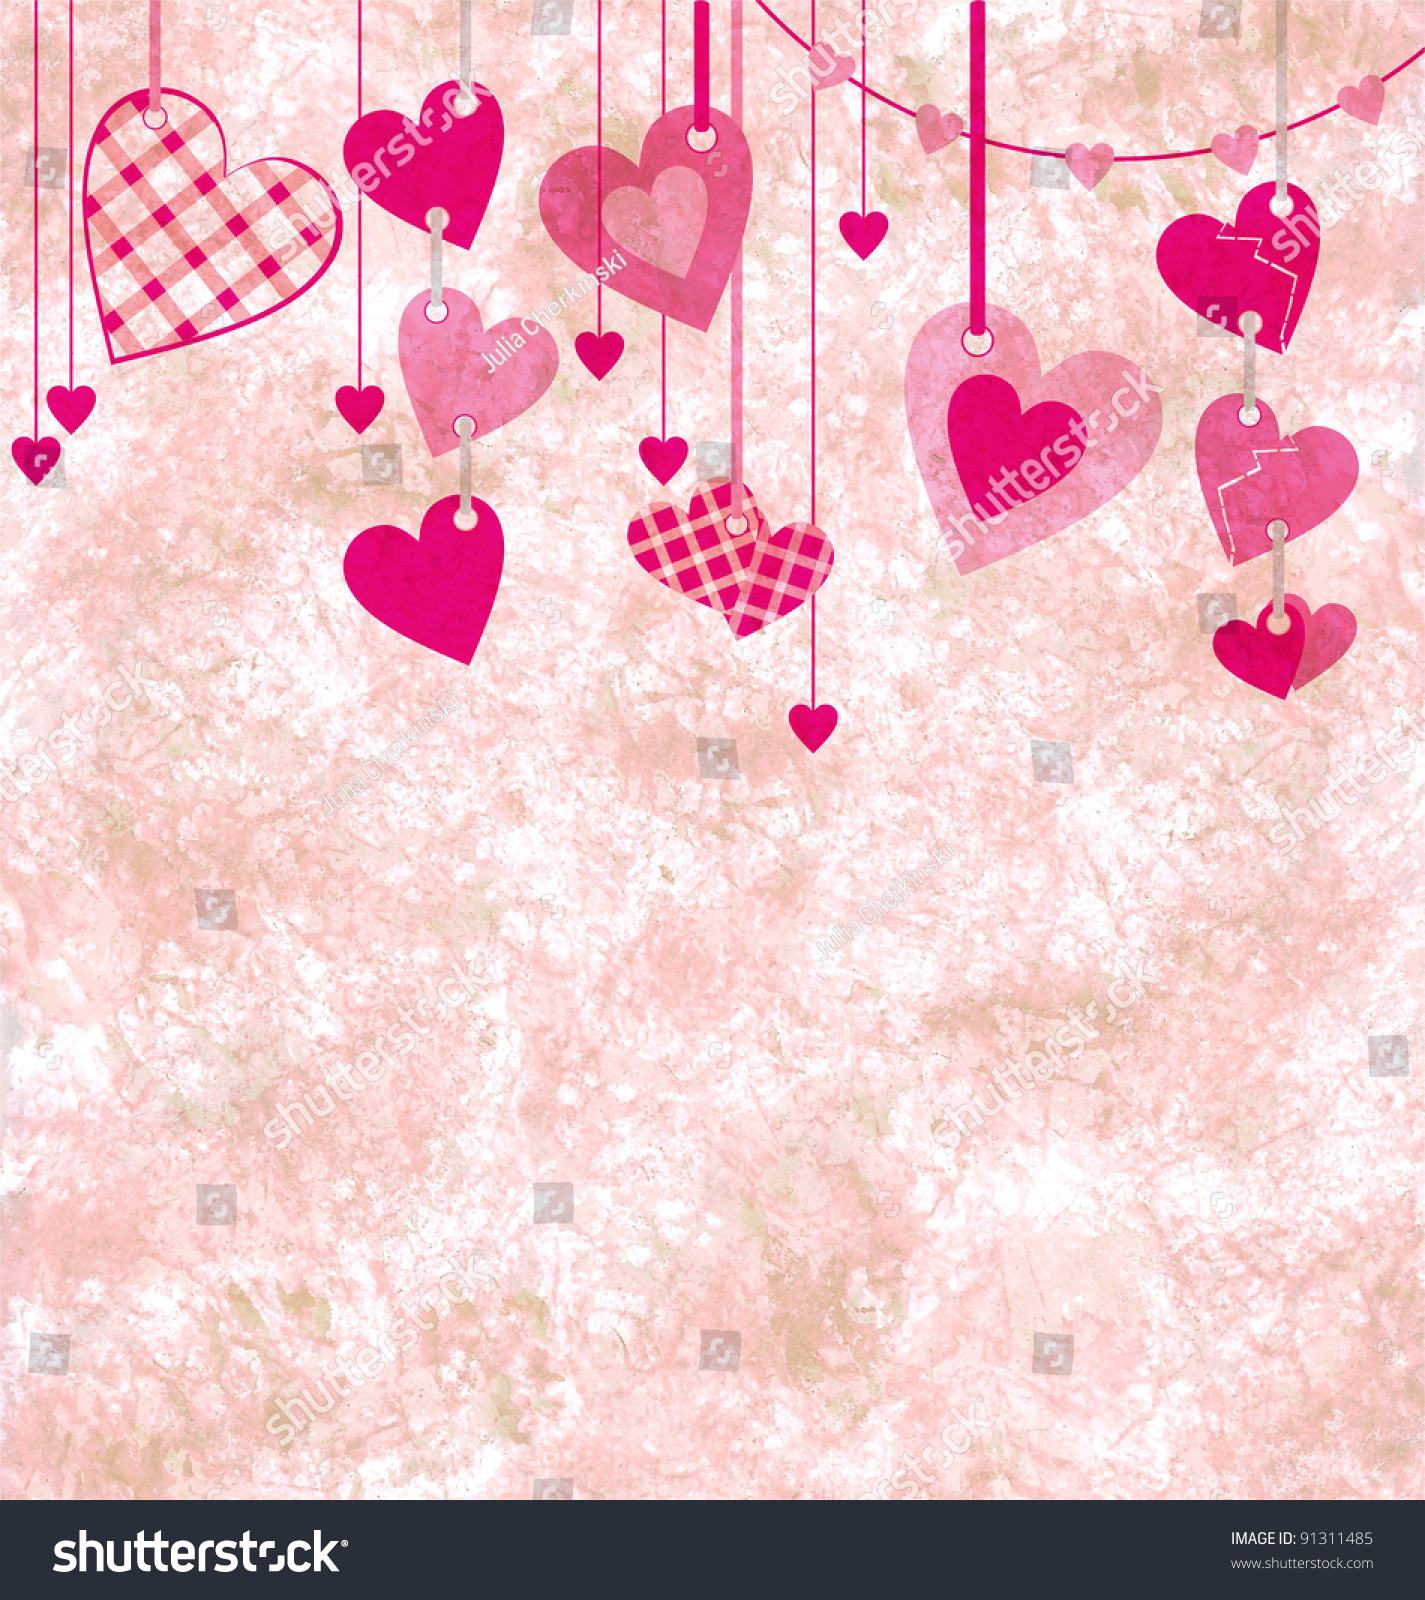 Different Pink Hanging Hearts On Grunge Stock Illustration